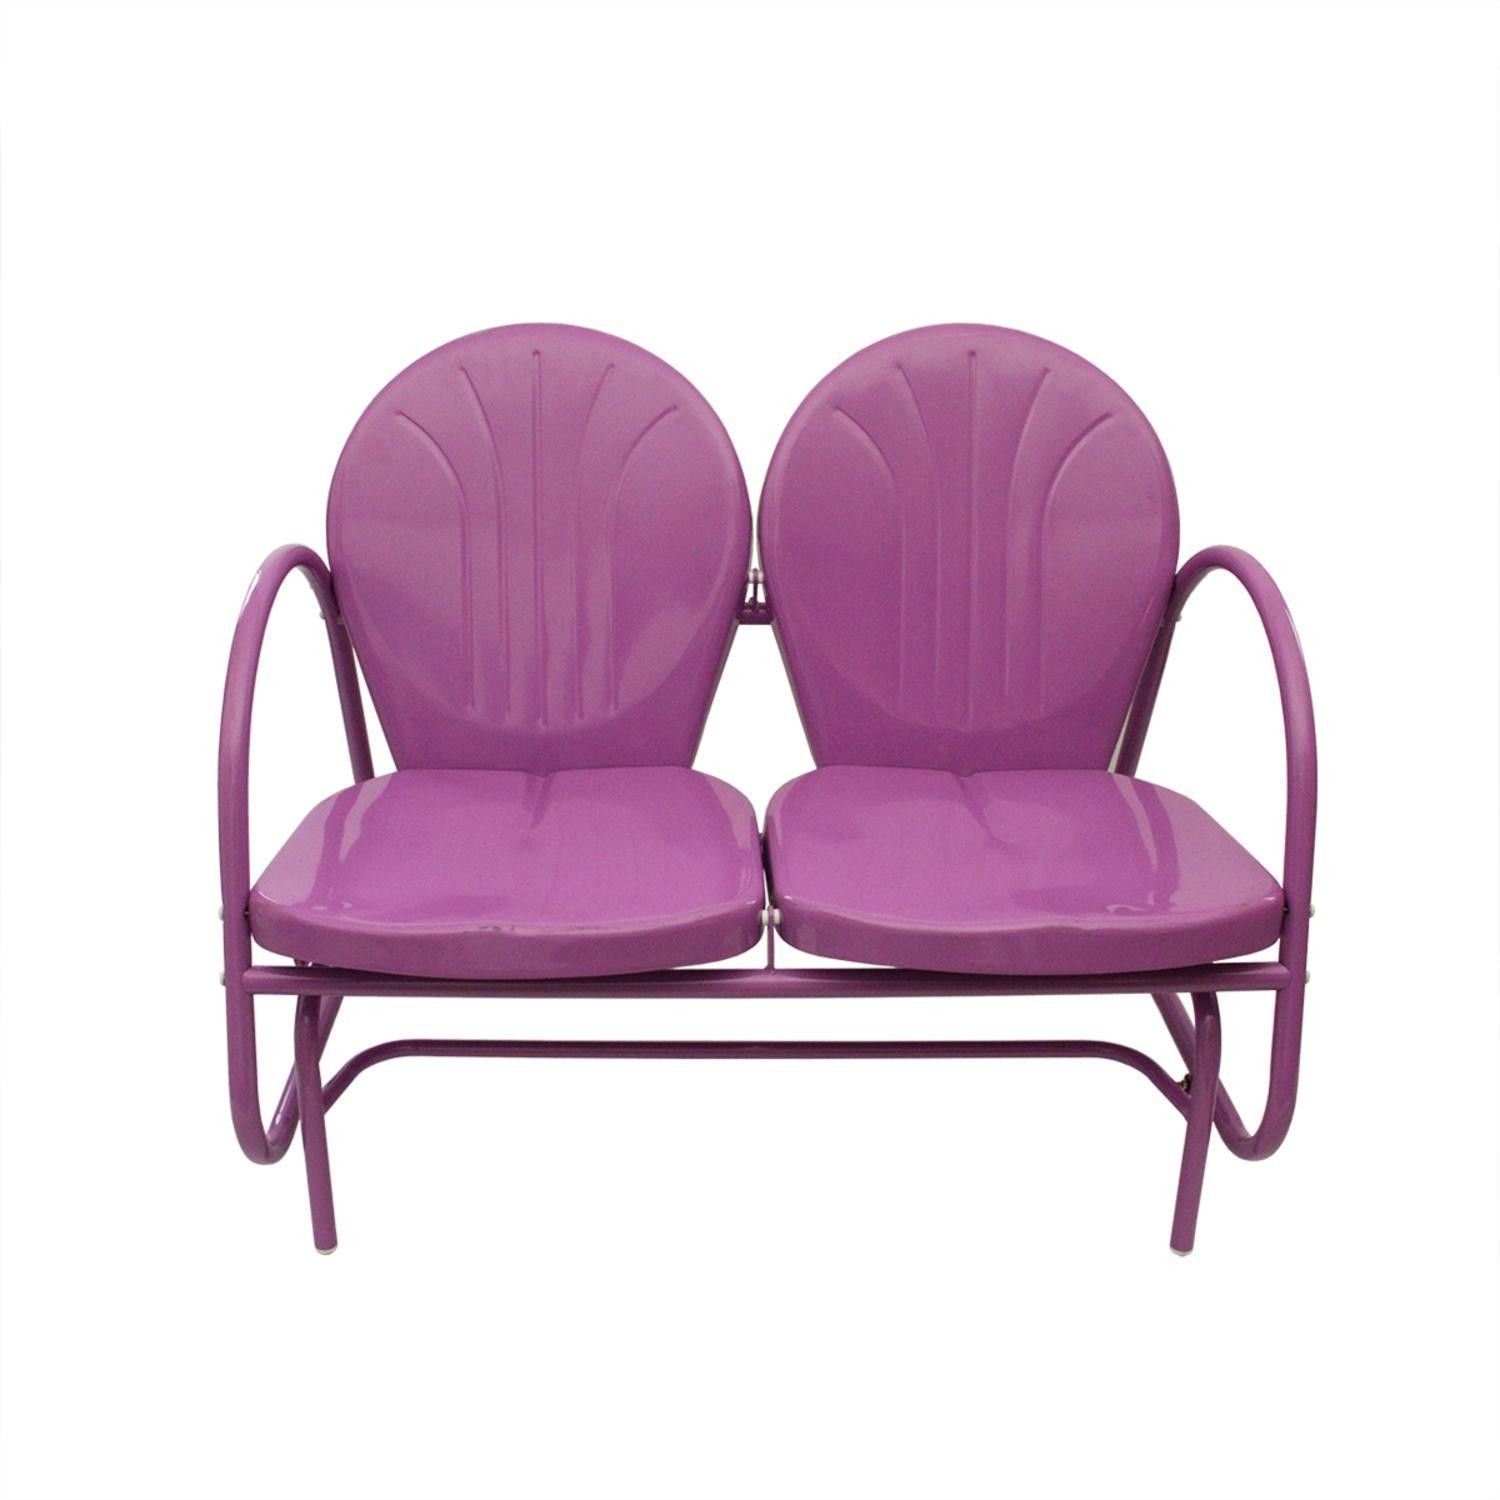 Retro Metal Purple Tulip Double Glider Chair | Glider Pertaining To Outdoor Retro Metal Double Glider Benches (View 11 of 25)